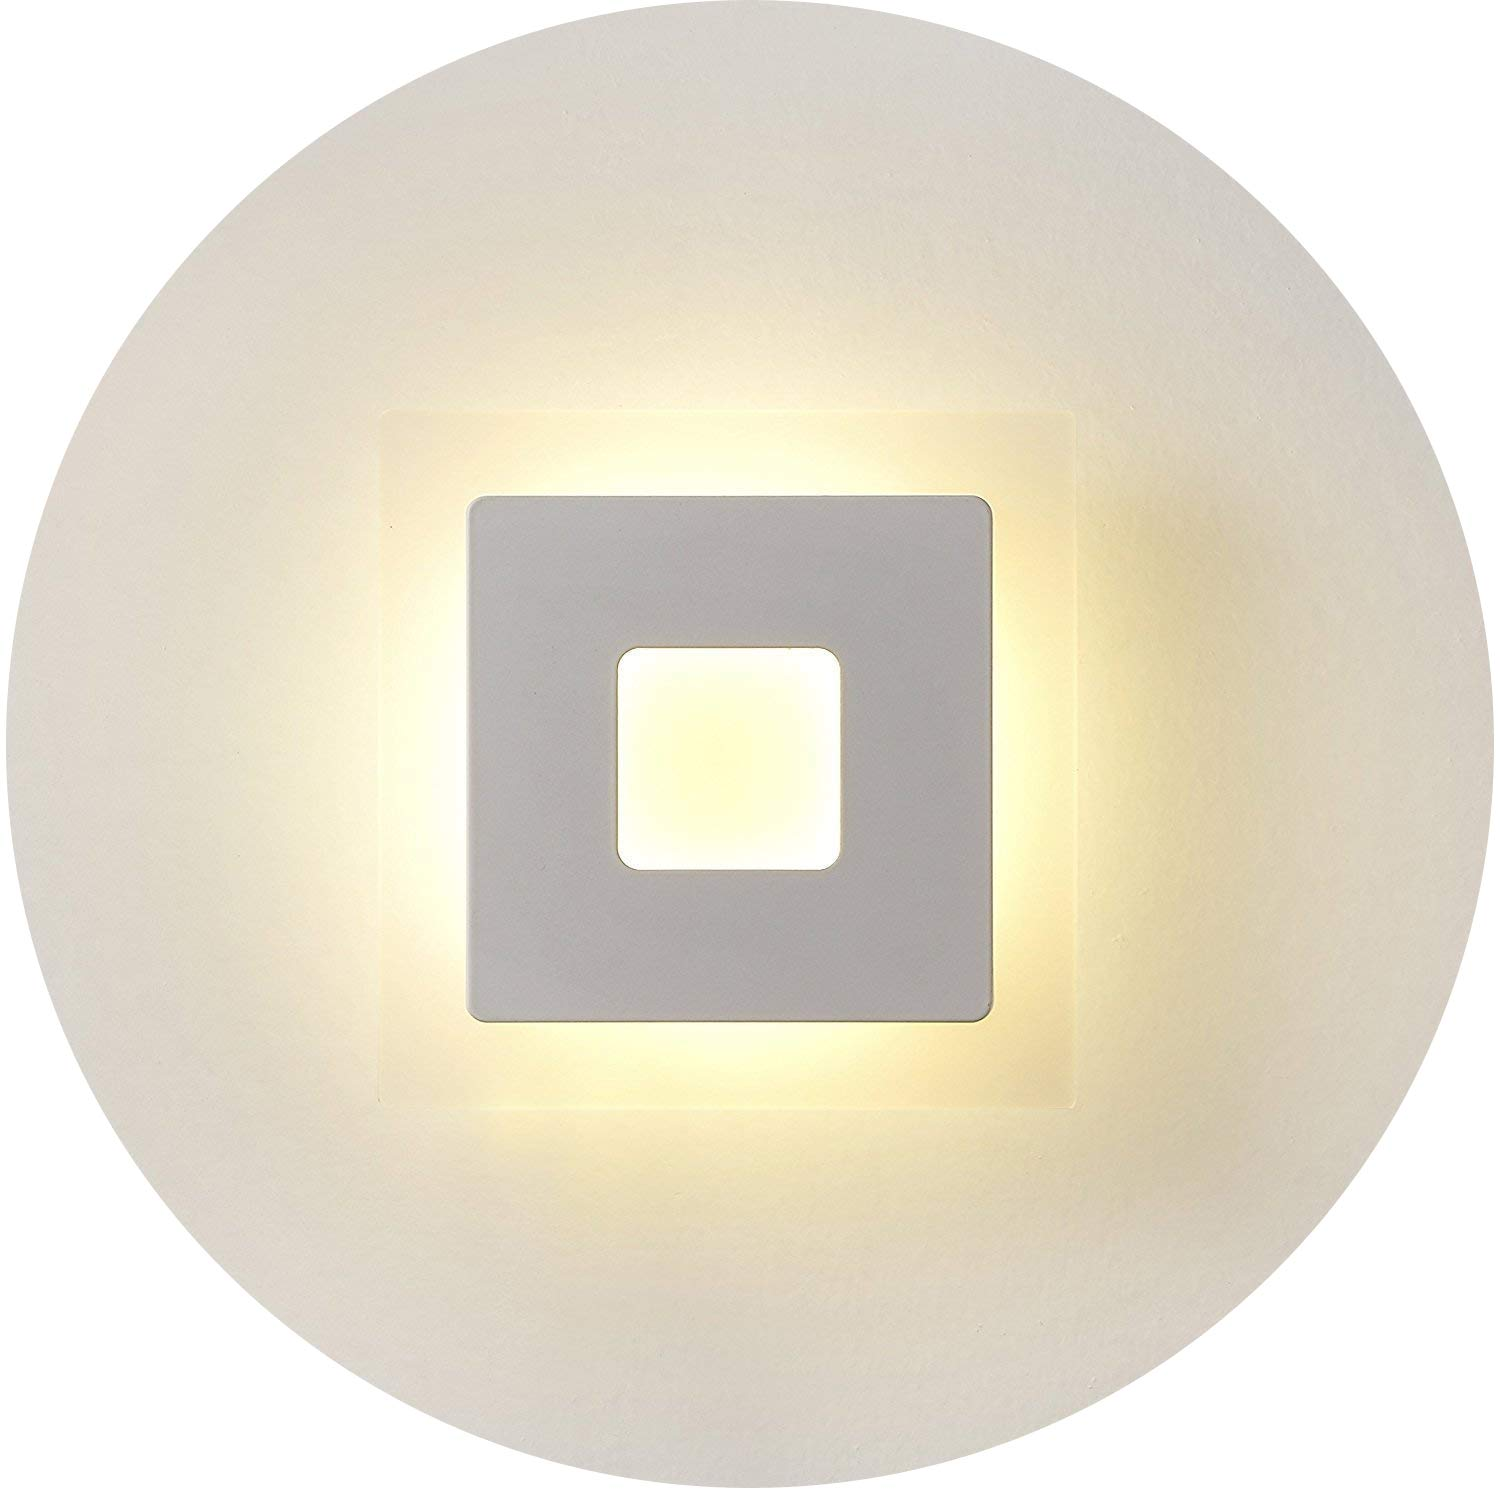 Topmo Modern 18w Acrylic LED Wall Sconces Aluminum Lights Decorative Lamps Night Light for Pathway, Staircase, Bedroom, Balcony,Drive Way,Warm White(3000K) 1260LM 16 x 16 x 4CM